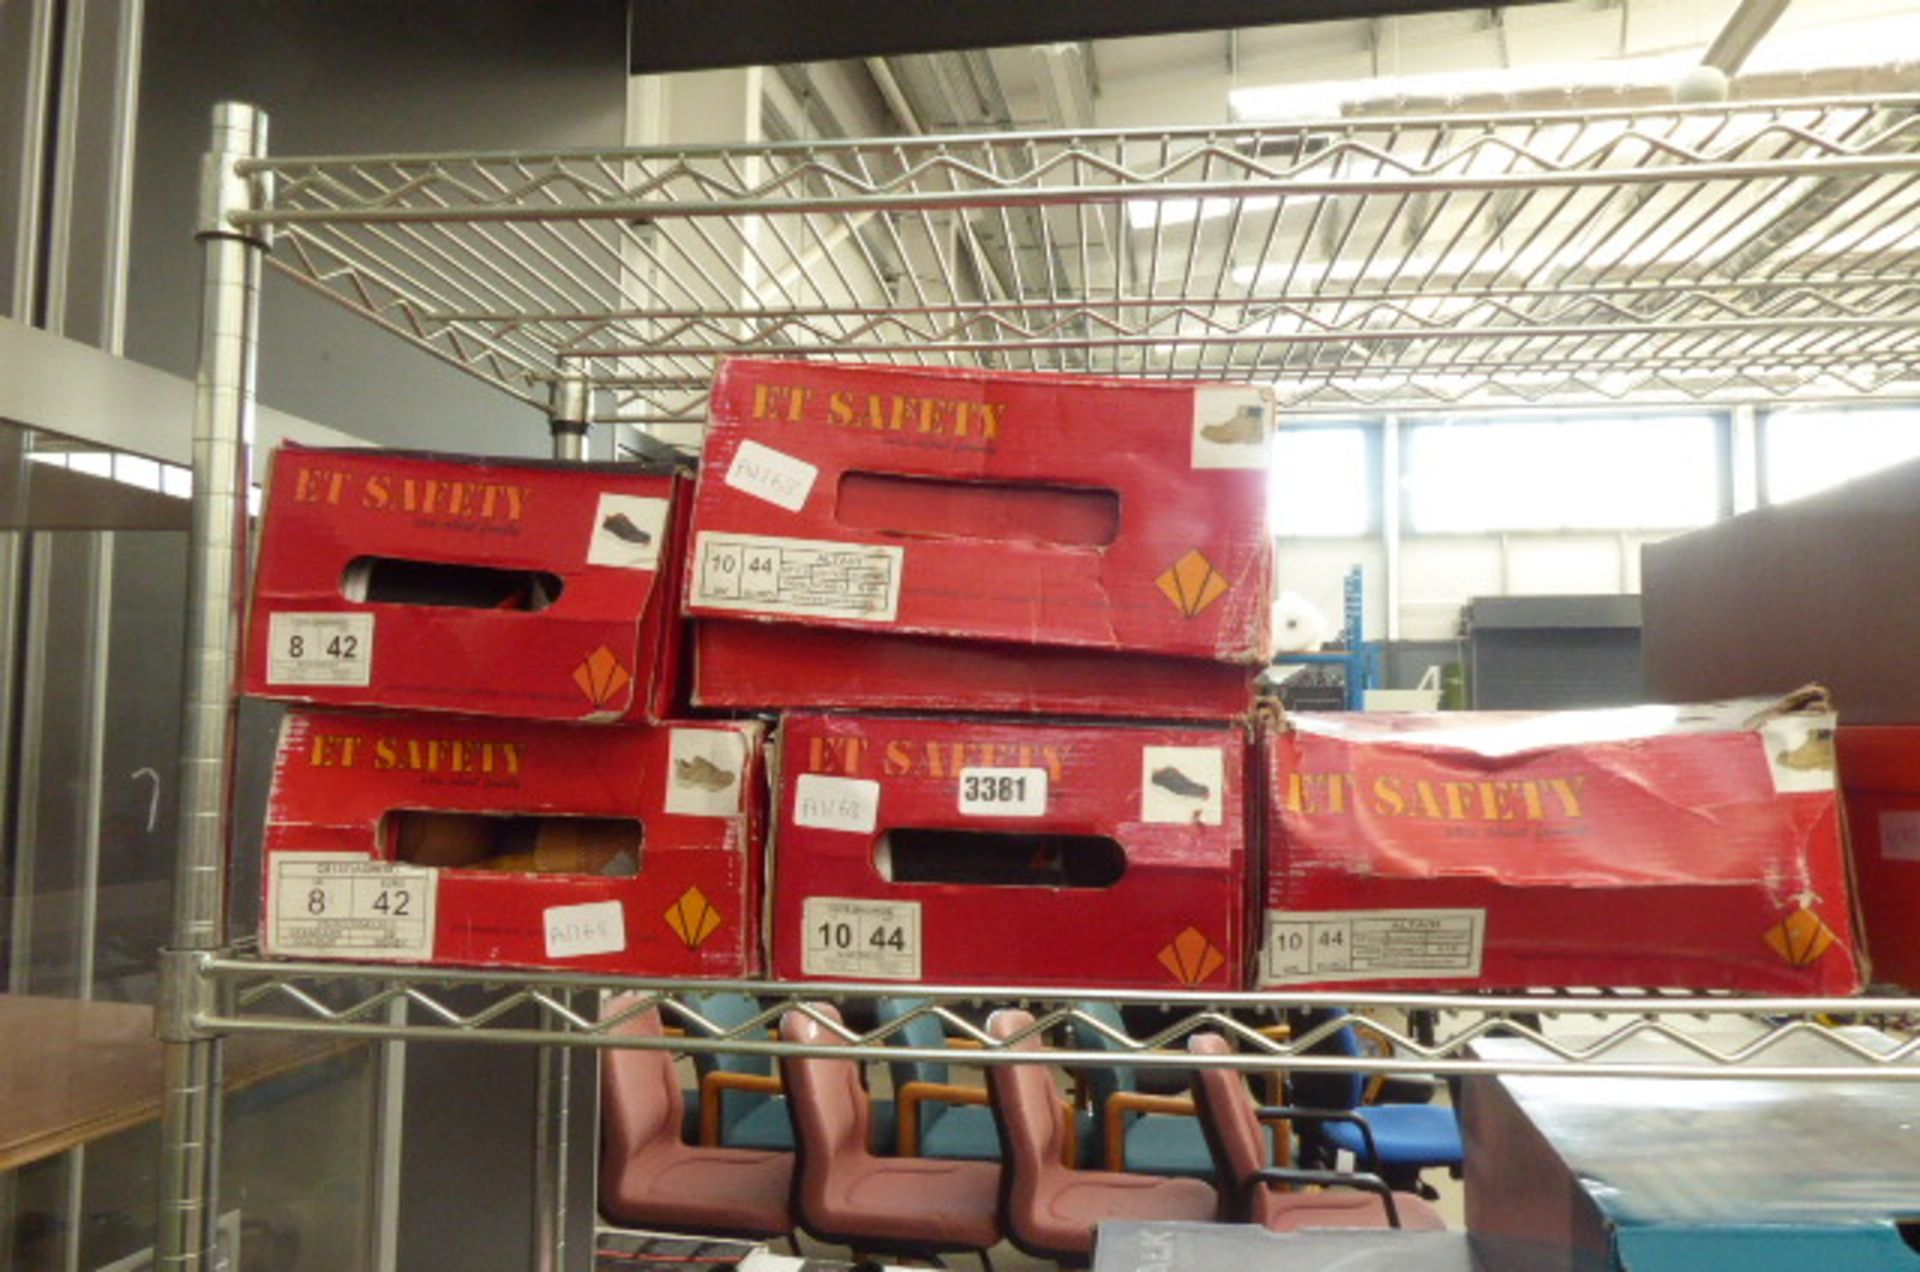 Lot 3381 - 5 Boxed pairs of safety shoes